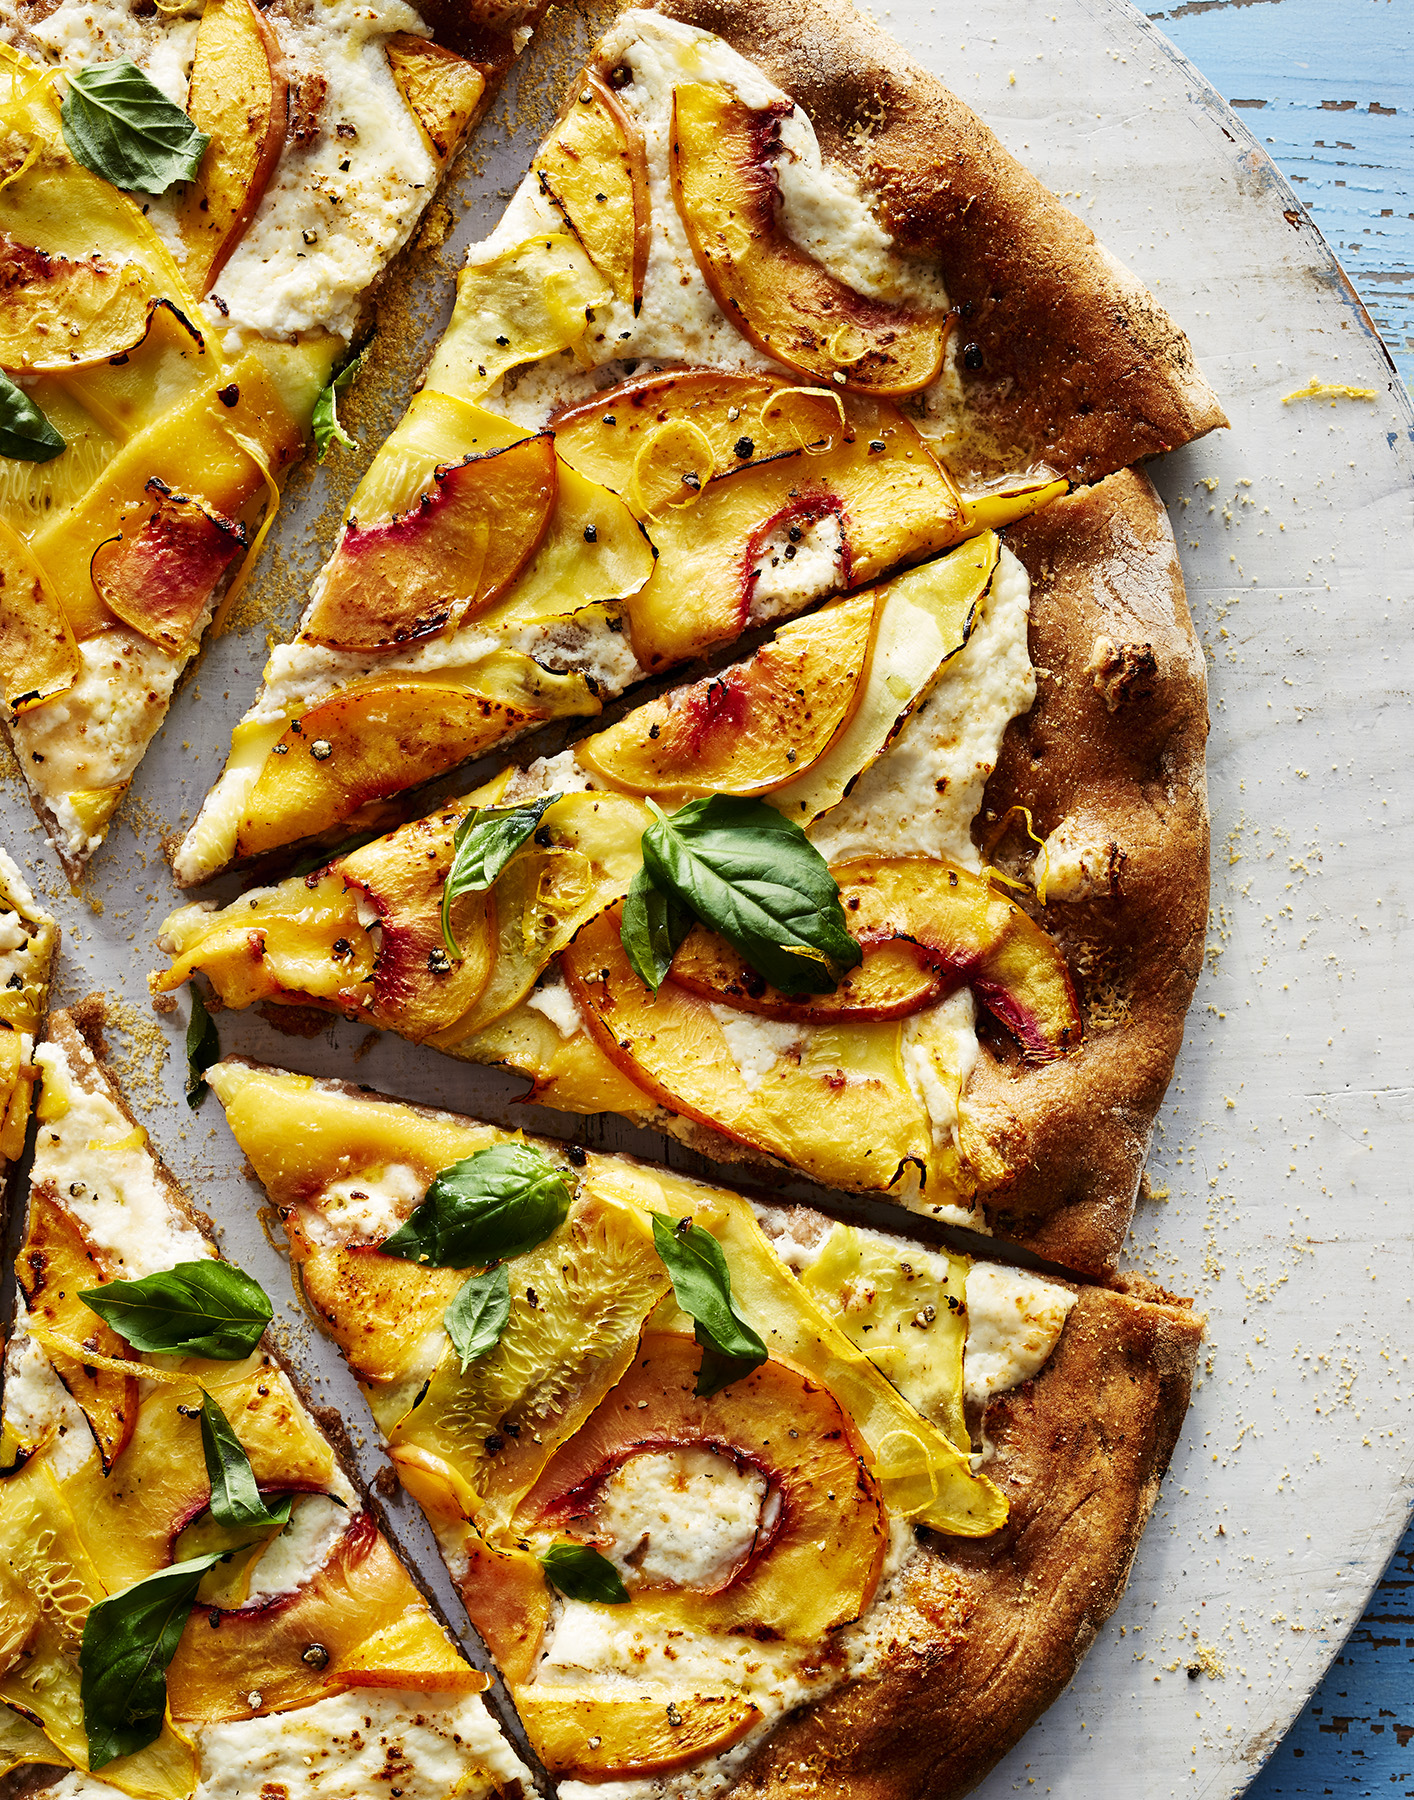 160317-Summer-Squash-Nectarine-Pizza-248